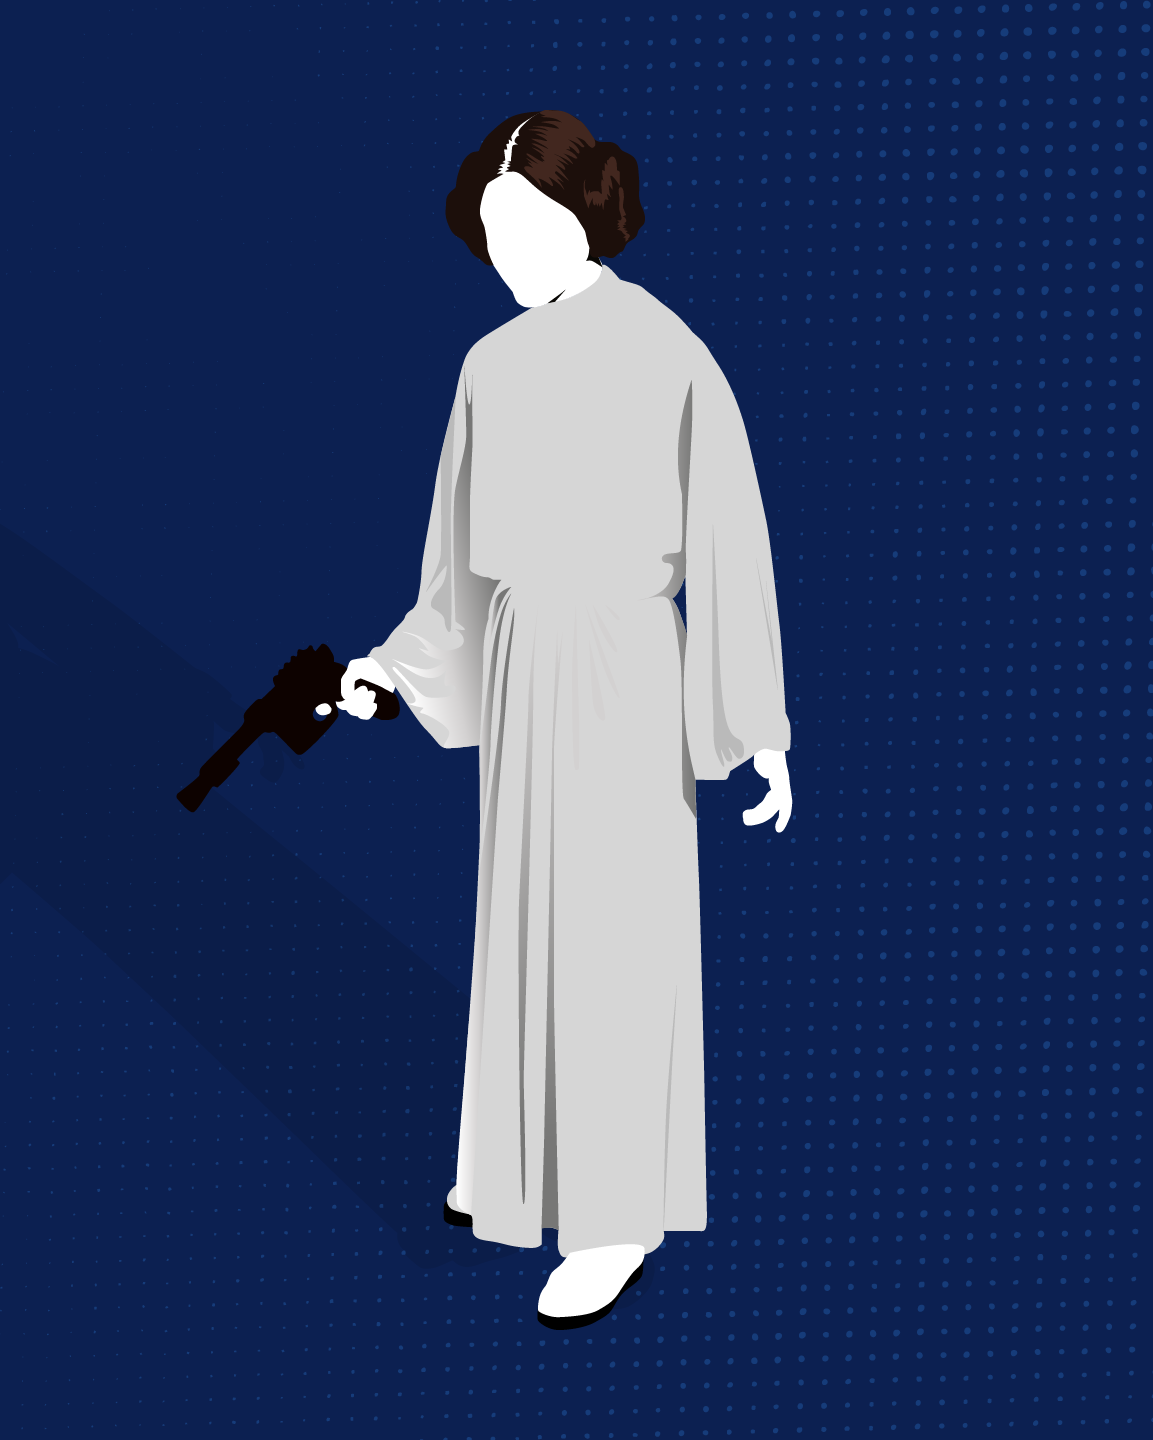 Han and Leia Illustration-01.png